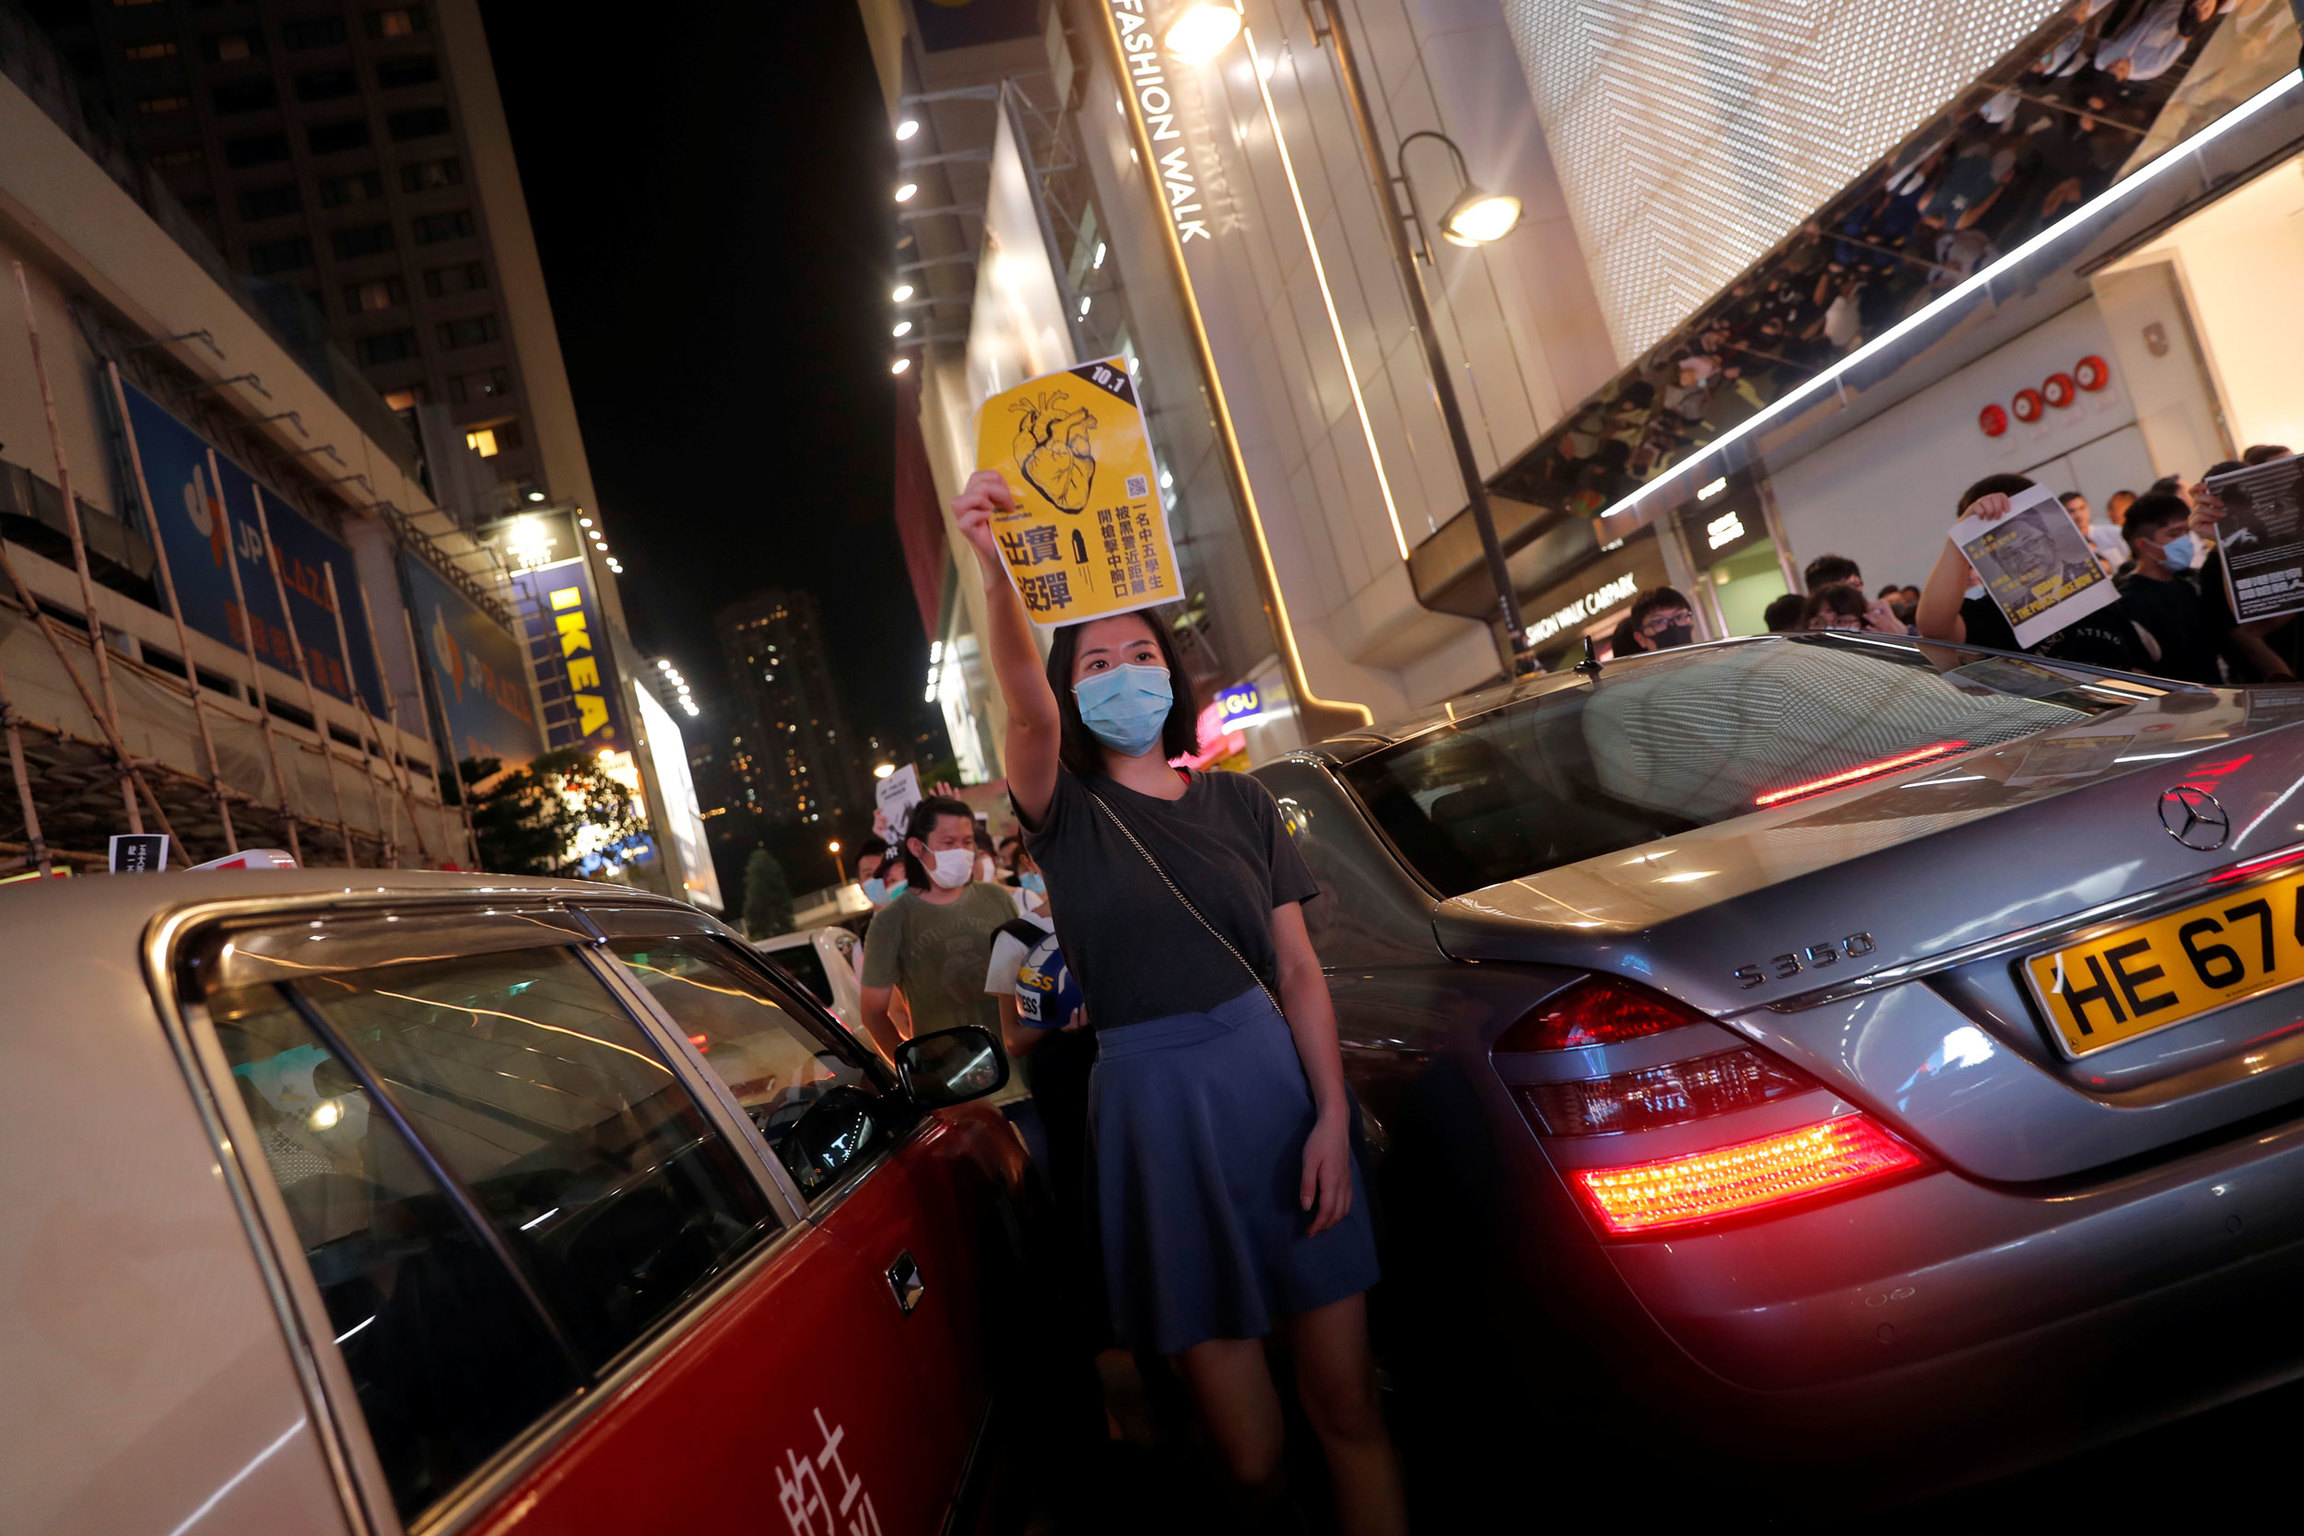 A woman is shown wearing a hospital mask and standing inbetween two cars.